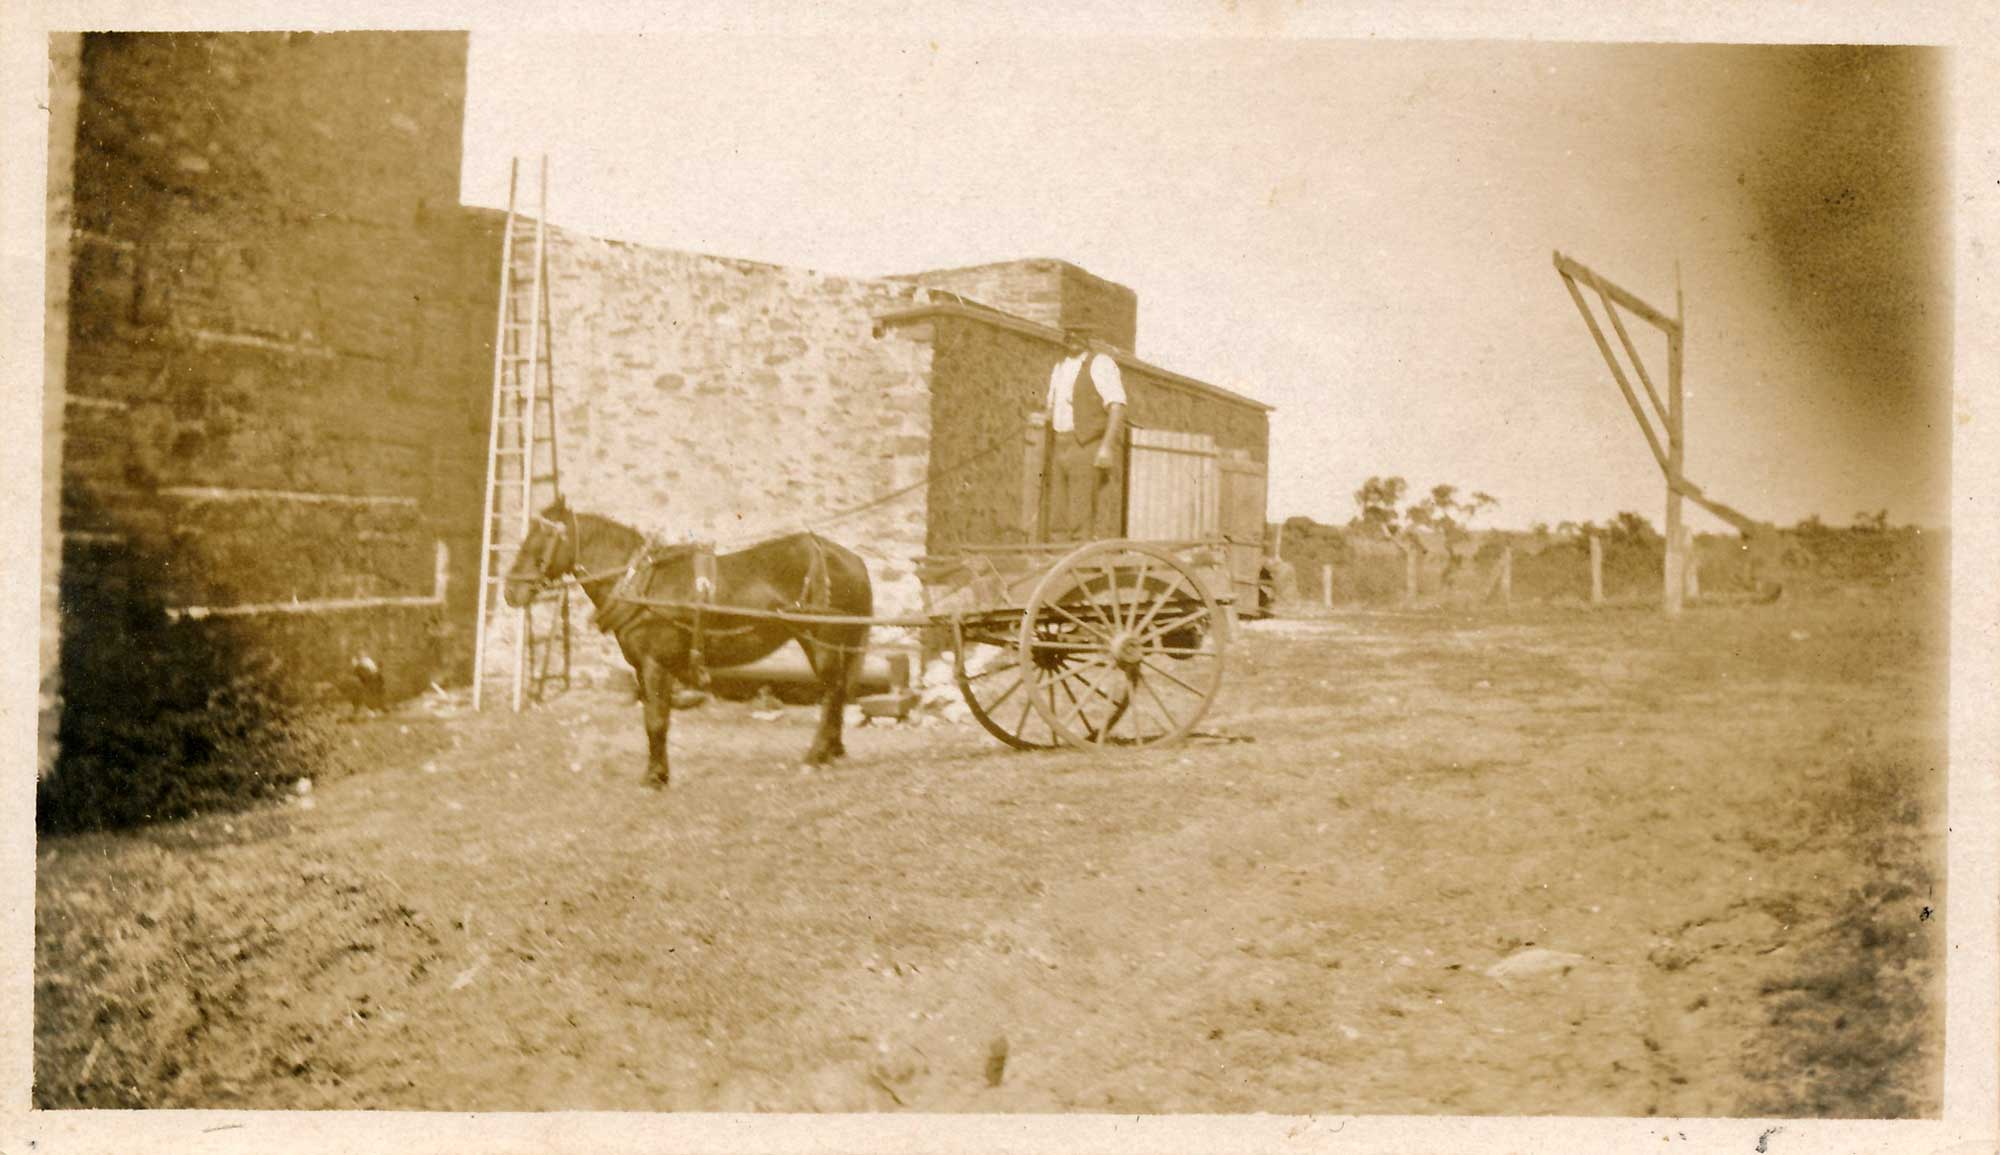 Horse and cart Stonegarden winery c1870s